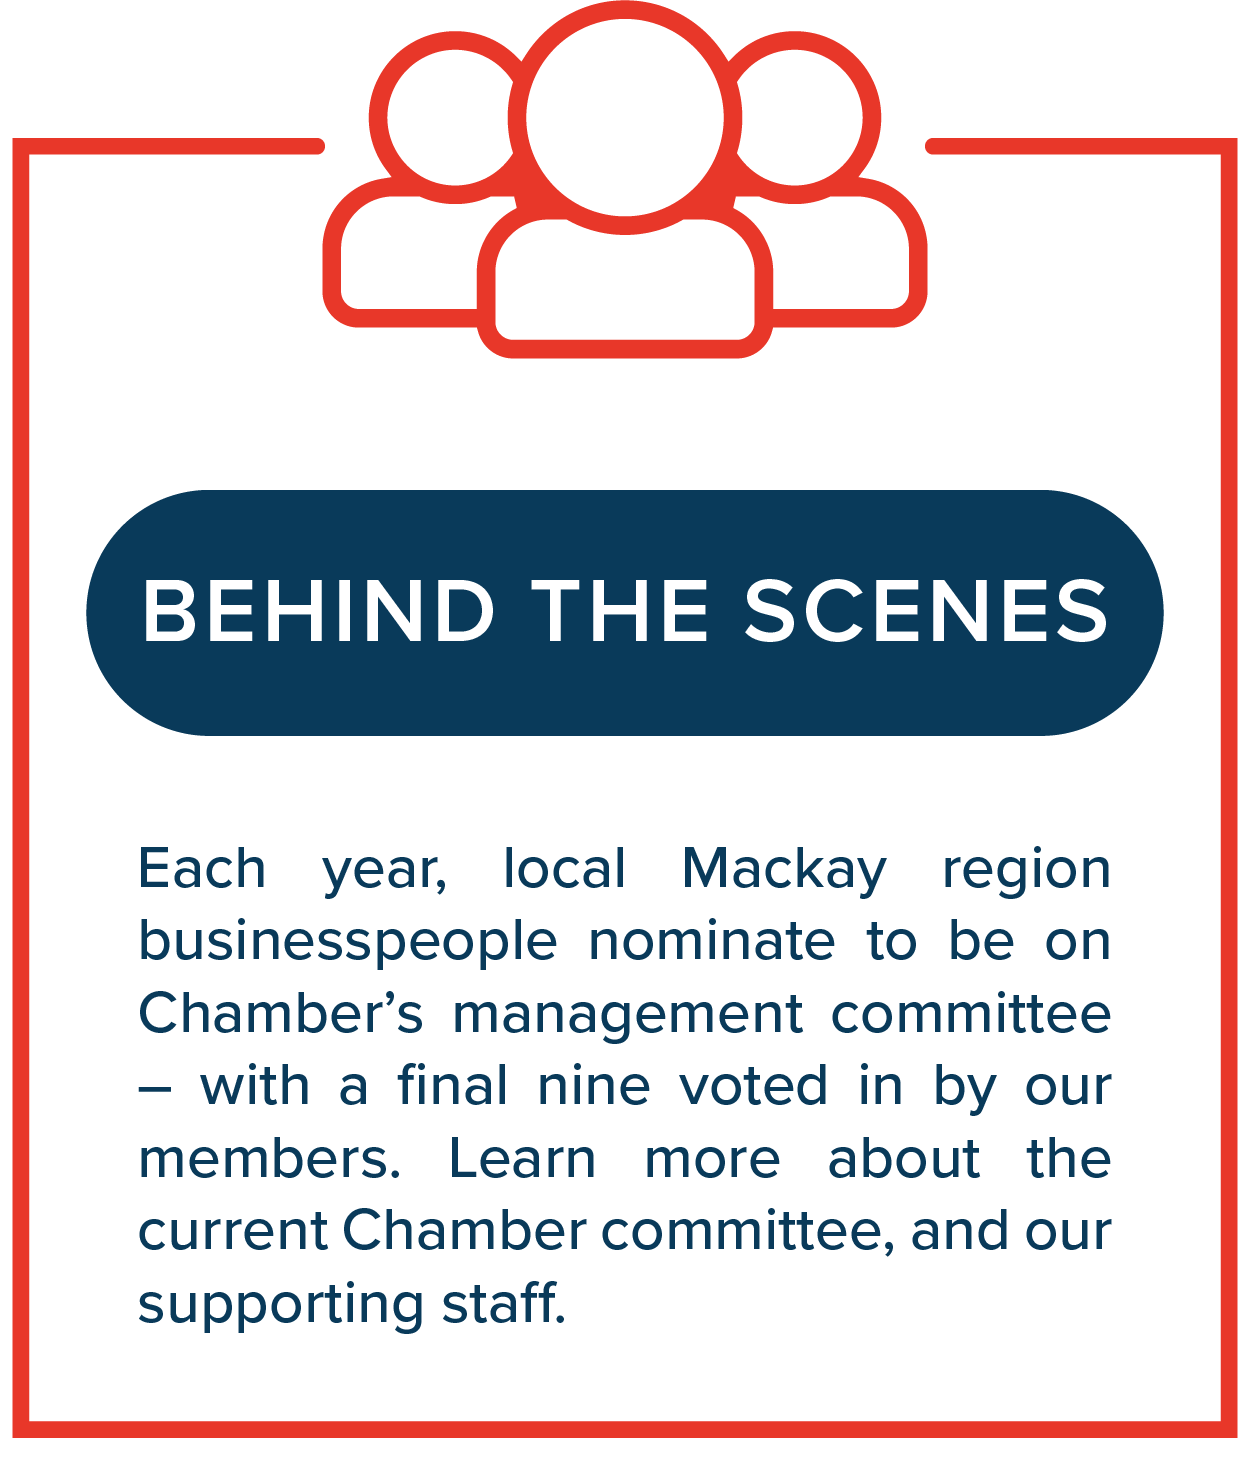 Behind the Scenes   Each year, local Mackay region businesspeople nominate to be on Chamber's management committee – with a final nine voted in by our members. Learn more about the current Chamber committee, and our supporting staff.